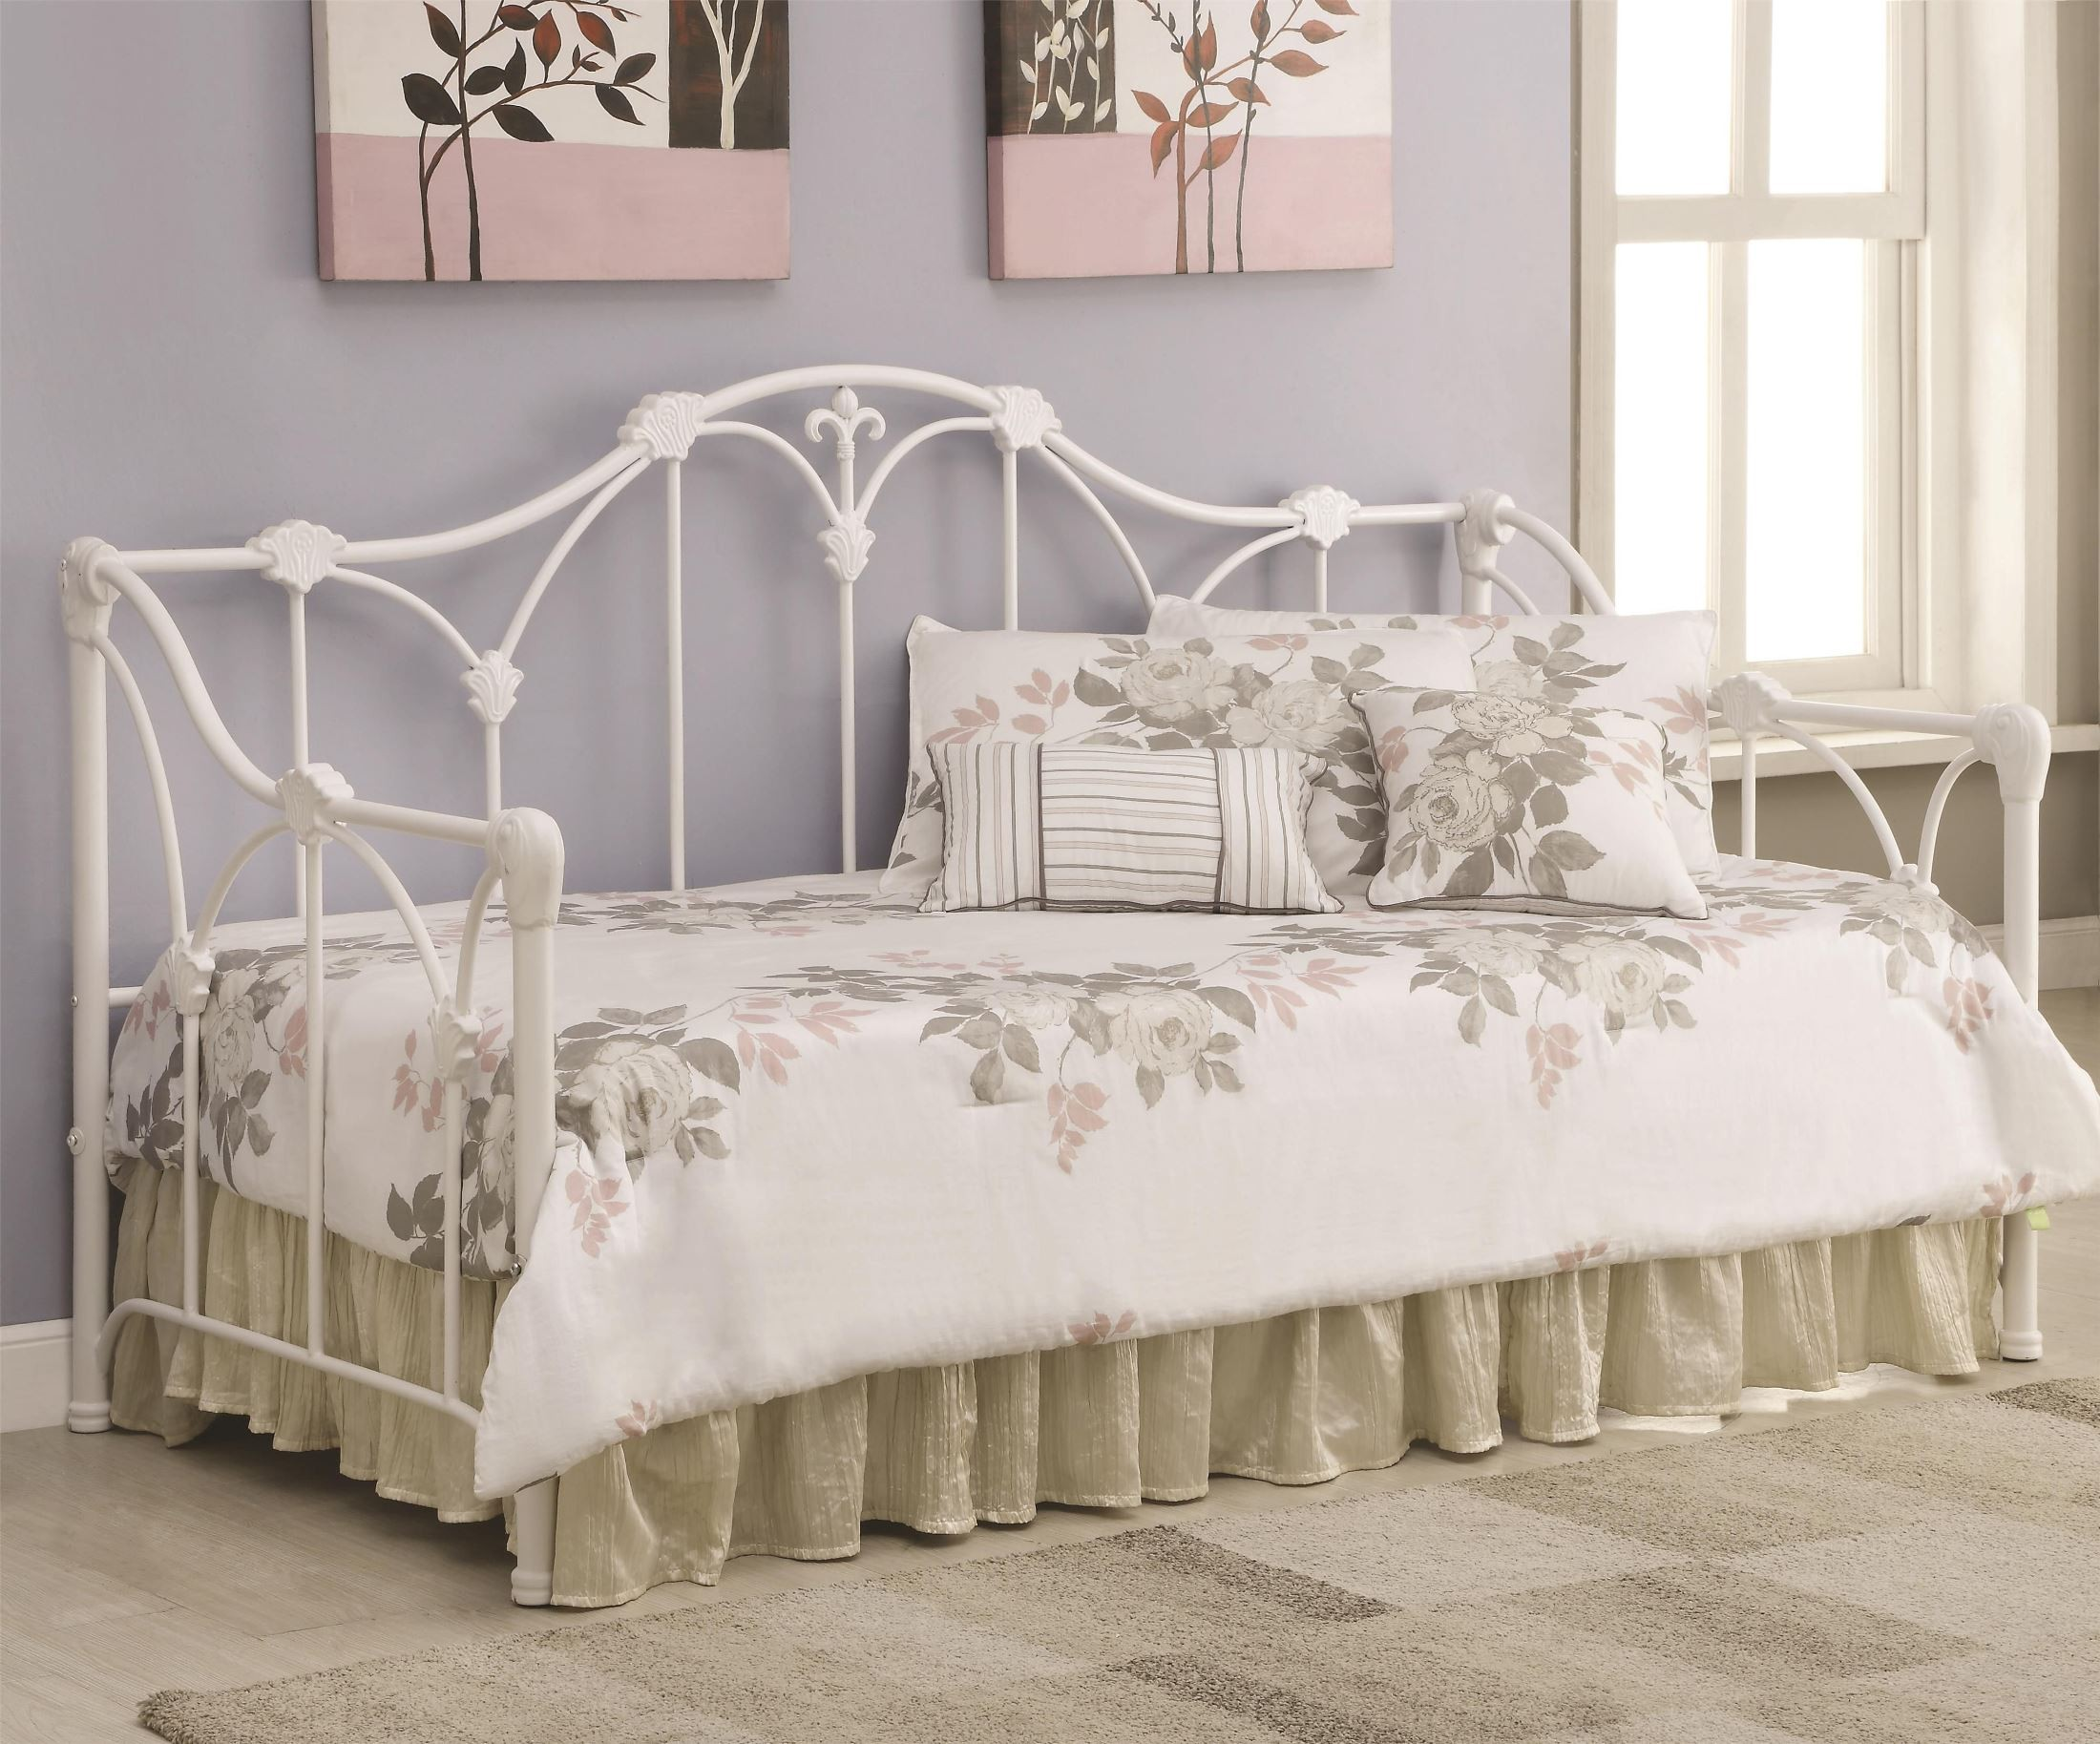 300216 Floral White Frame Daybed From Coaster 300216